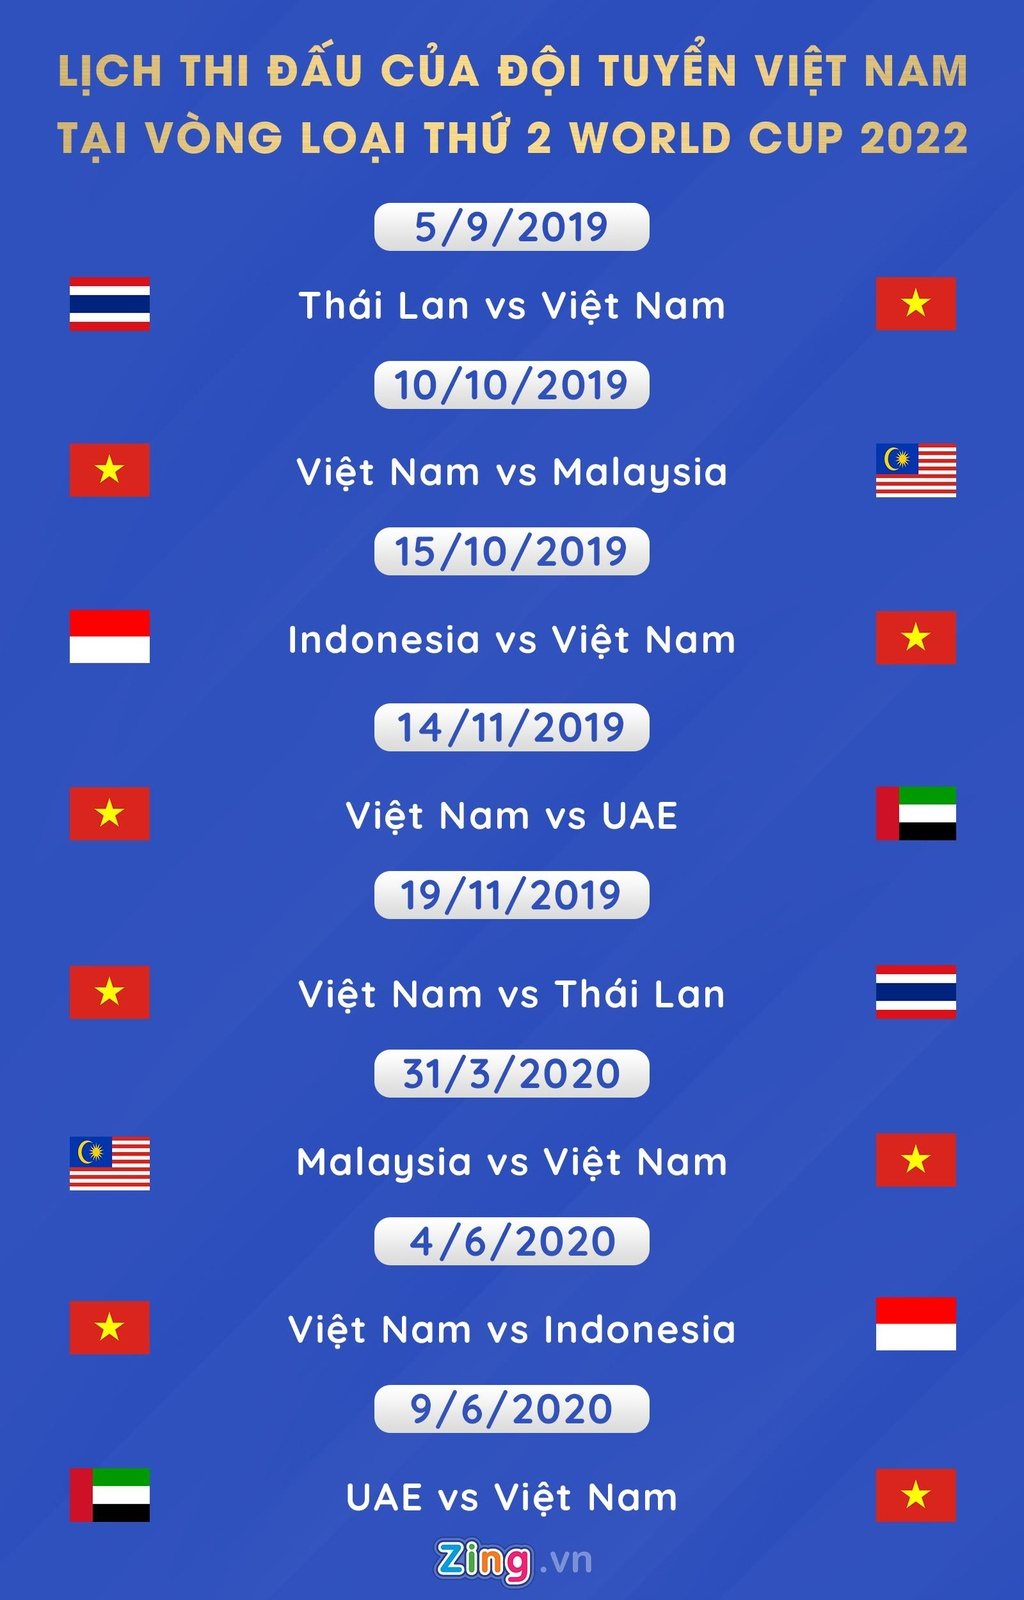 UAE,  vong loai World Cup,  DT Viet Nam anh 6